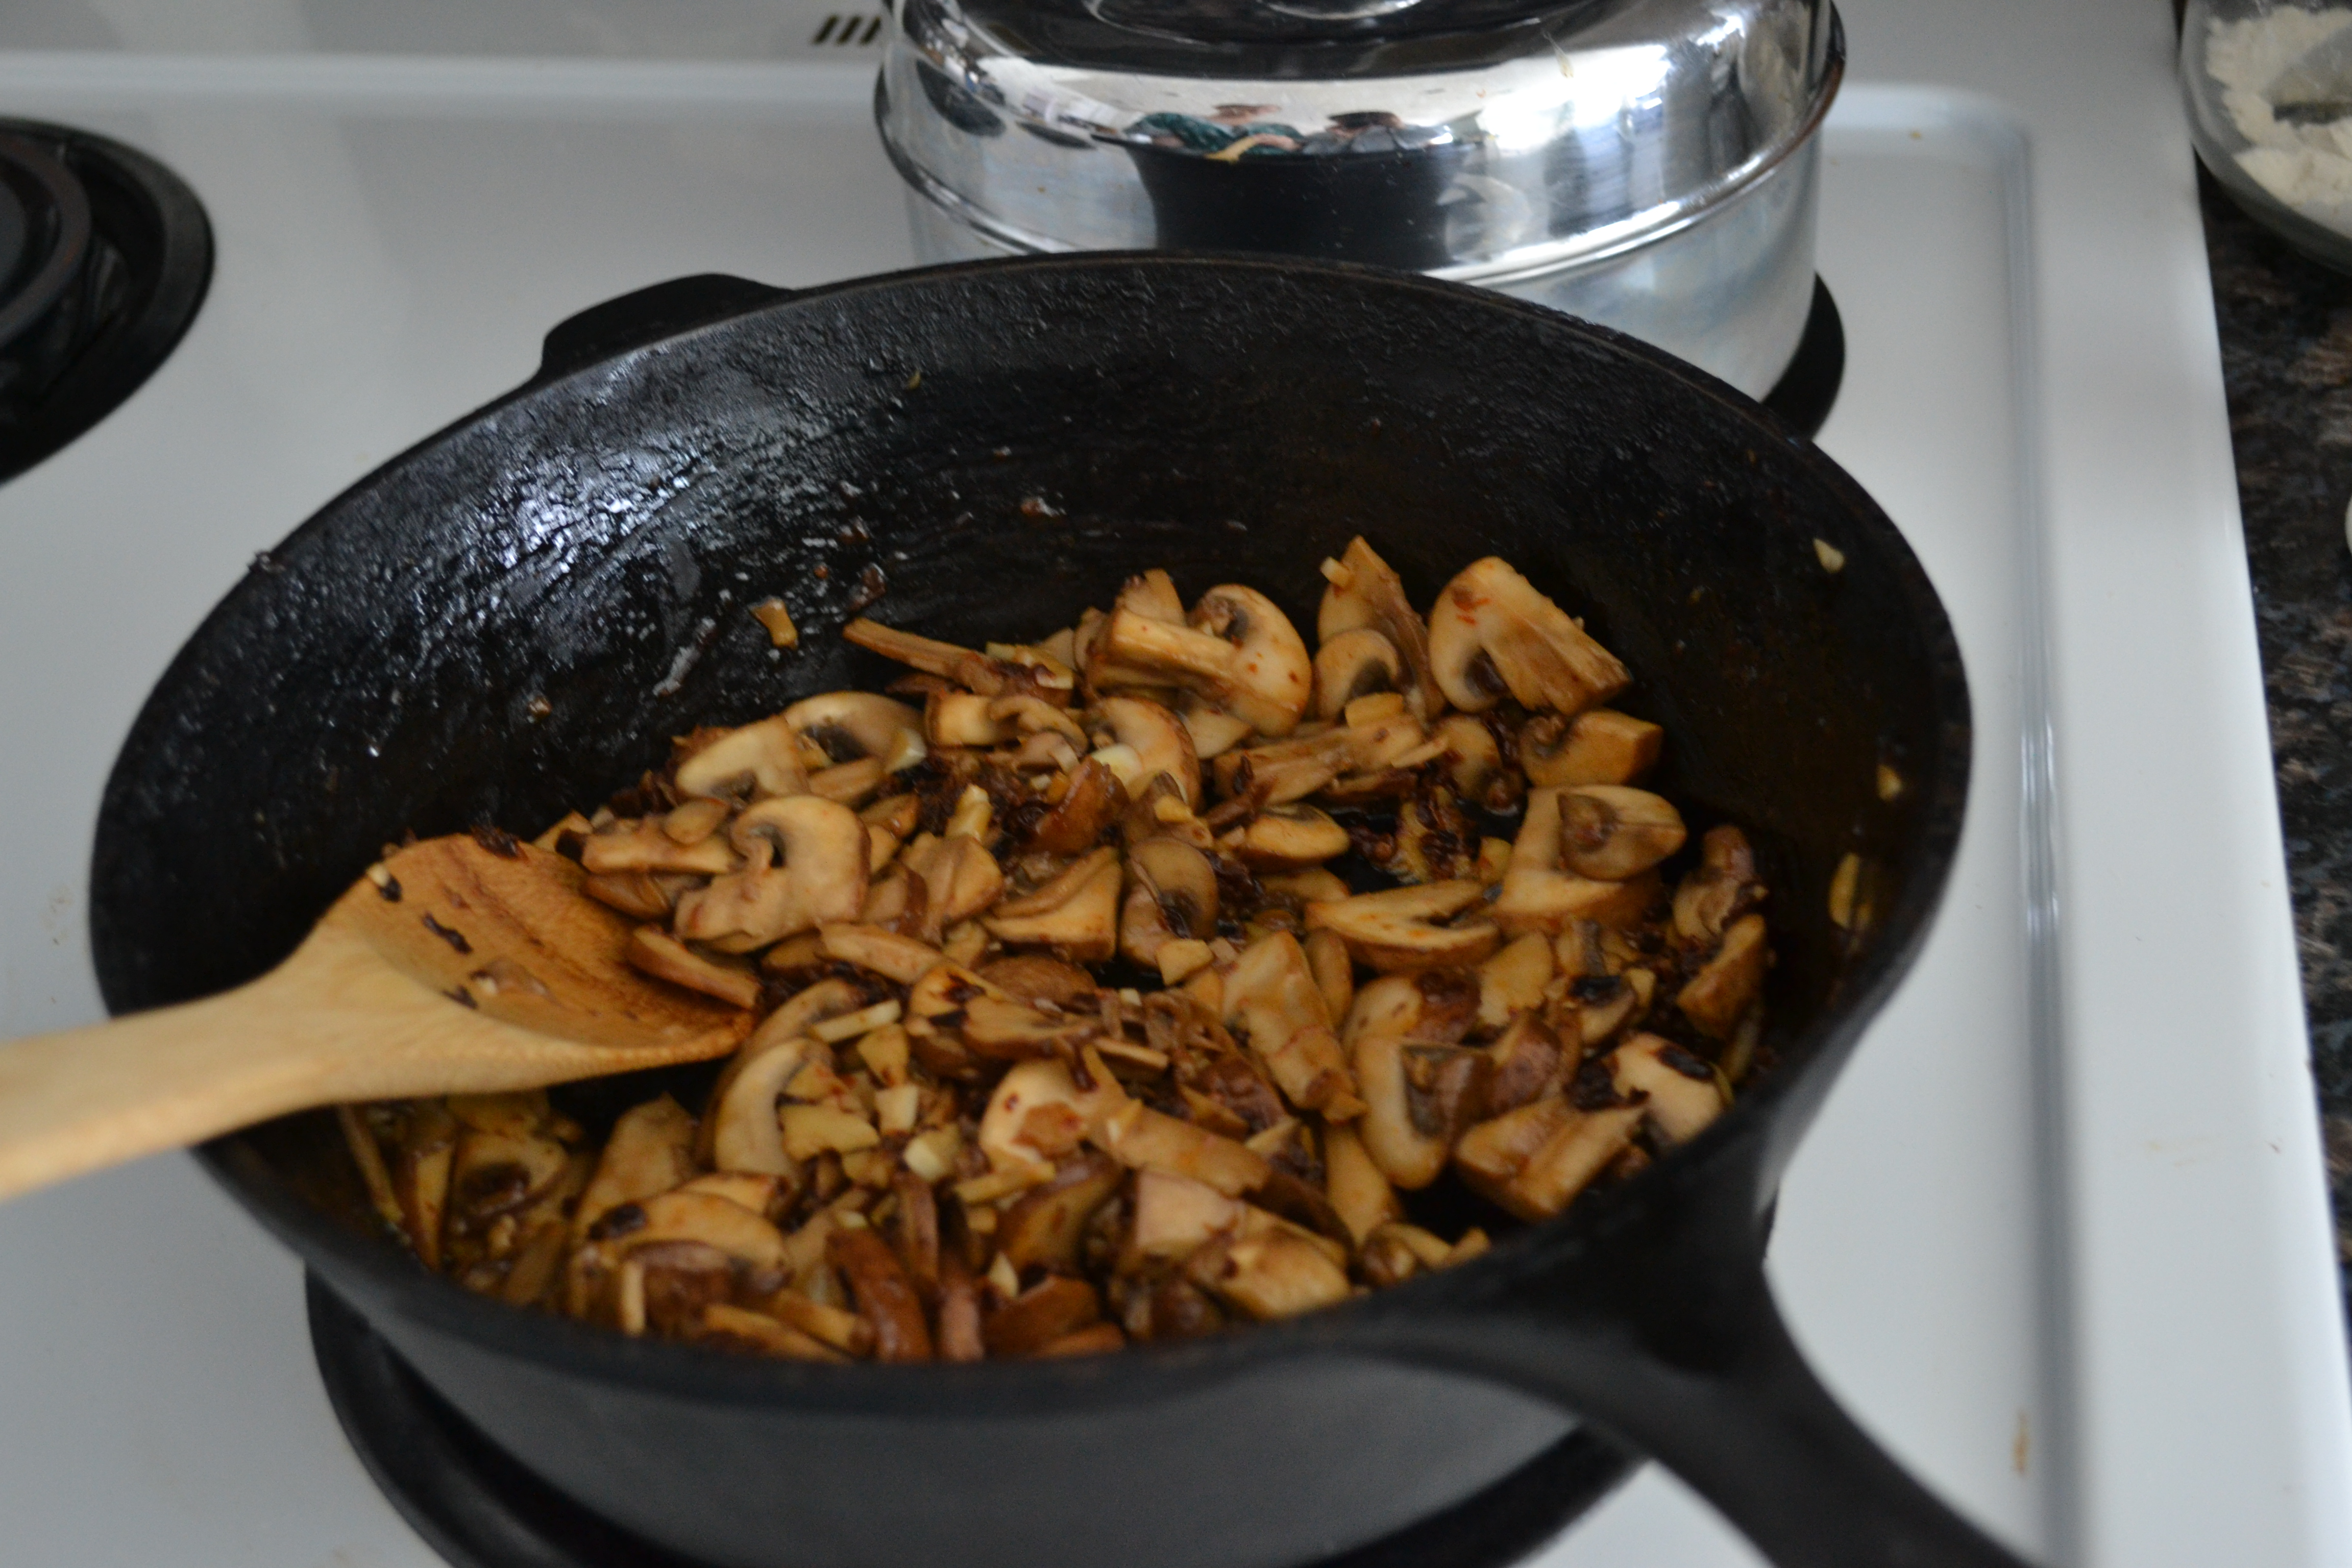 In a cast iron skillet, saute mushrooms in olive oil and butter ...